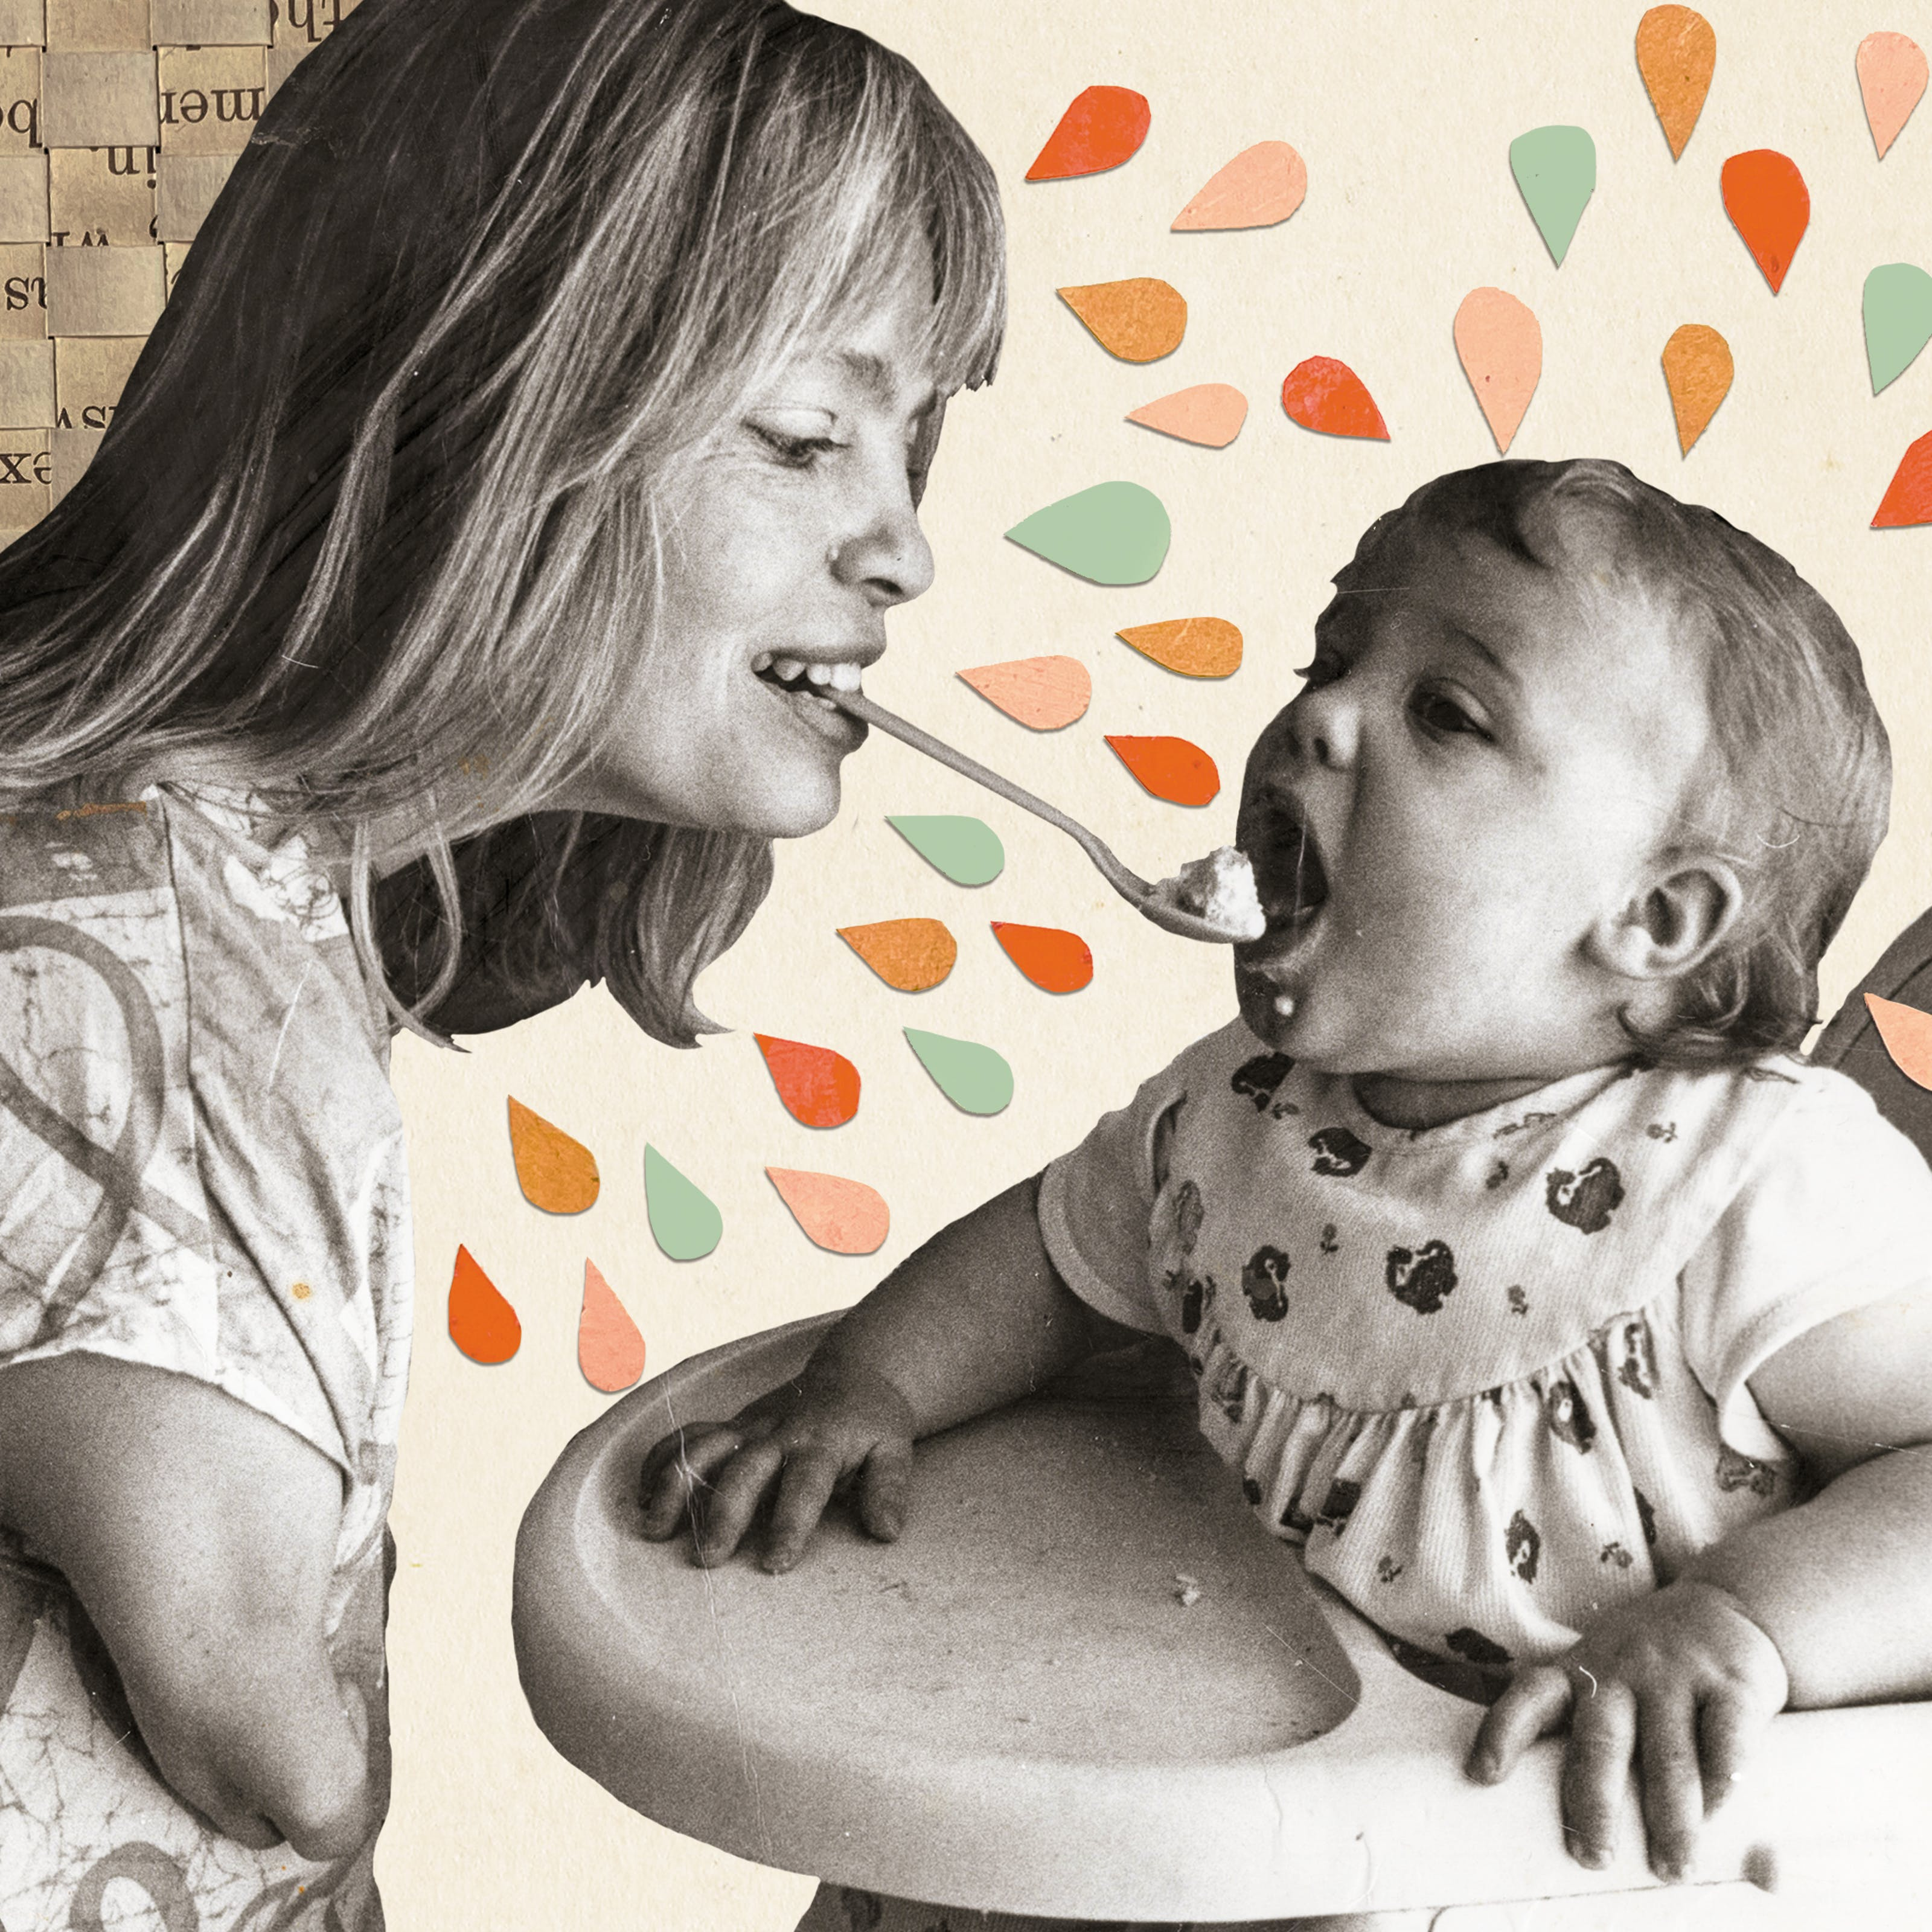 Mixed media artwork made up of an archive photograph, archive leaflets and cut out coloured shaped. The image shows a black and white sepia toned photograph which has been cut out of its original scene. The photograph shows a mother feeding her young child who is sat in a high chair. The mother is feeding the child using a spoon of food held in her mouth. The mother has short arms as a result of her mother being prescribed thalidomide when she was pregnant. The young child is leaning forward, mouth open, ready to eat from the spoon. Behind the mother to the left is a three dimensional lattice weave of an archive leaflet. The word are scrambled up but it gives a sense of texture. Radiating out from the mother's head and the child's head are droplet shaped pieces of card, resting on top of the cream background of the image. These droplets are orange, light green, pink and mustard colours. They add a sense of energy, action and joy to the image.